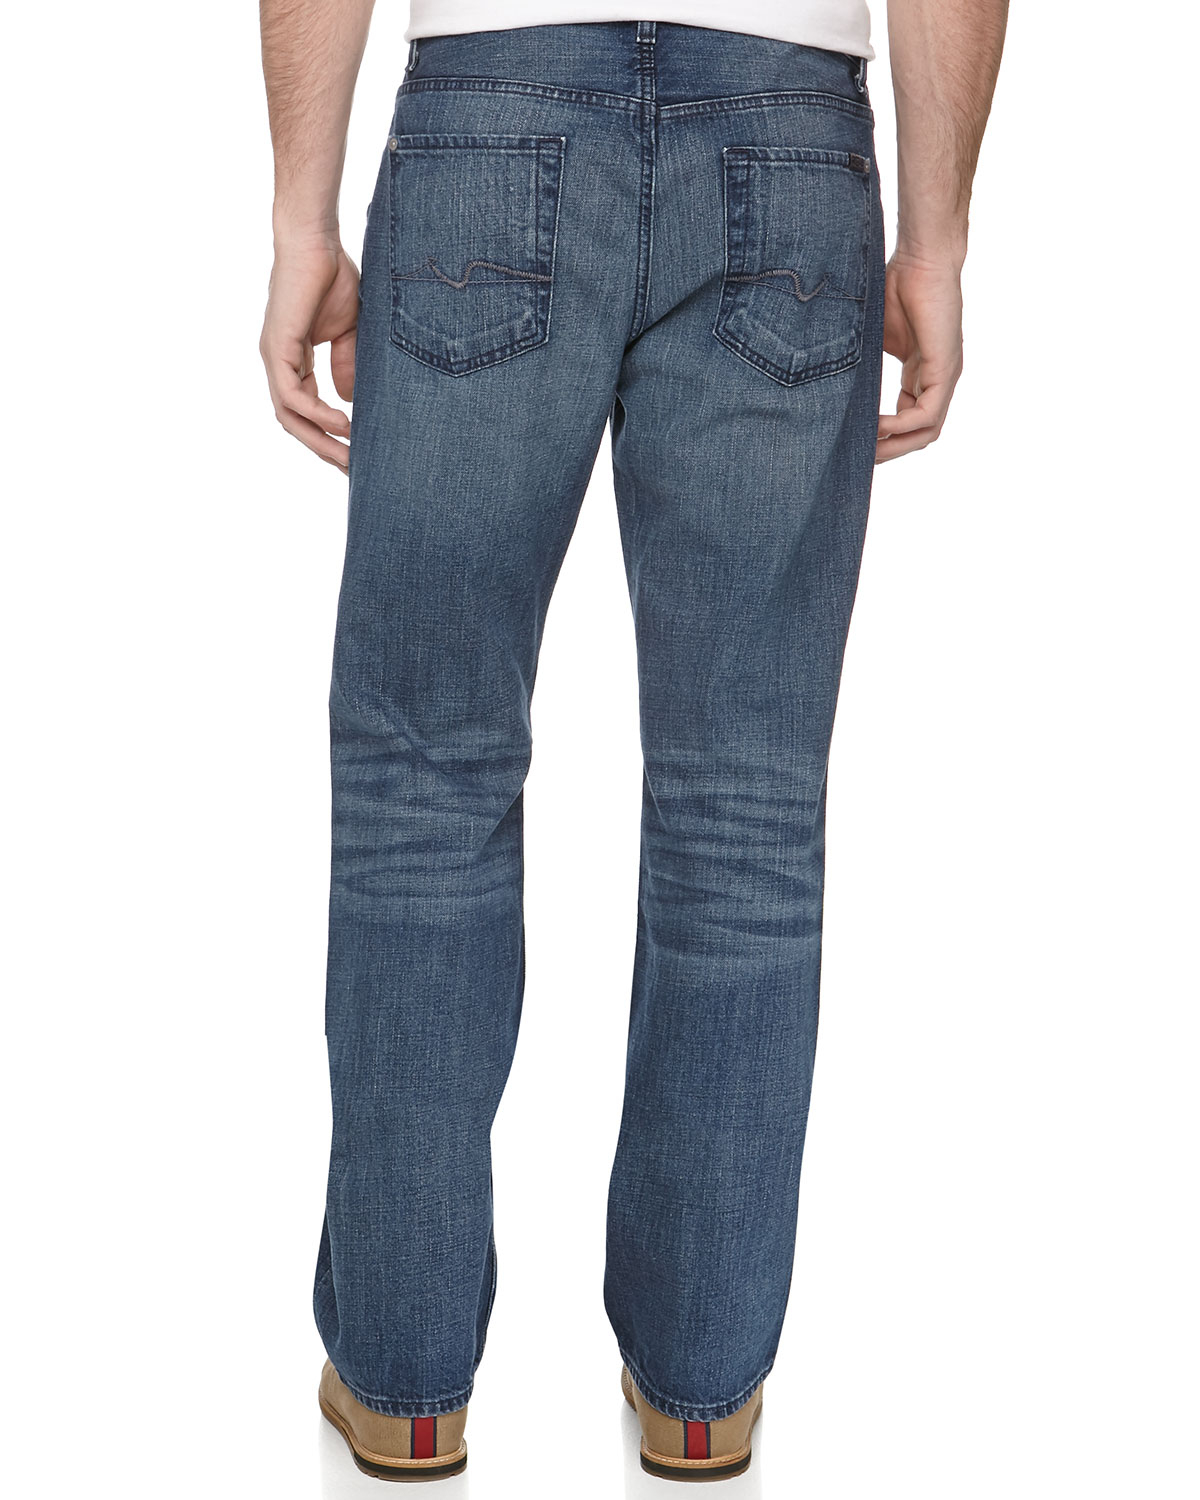 Relaxed Mens Jeans